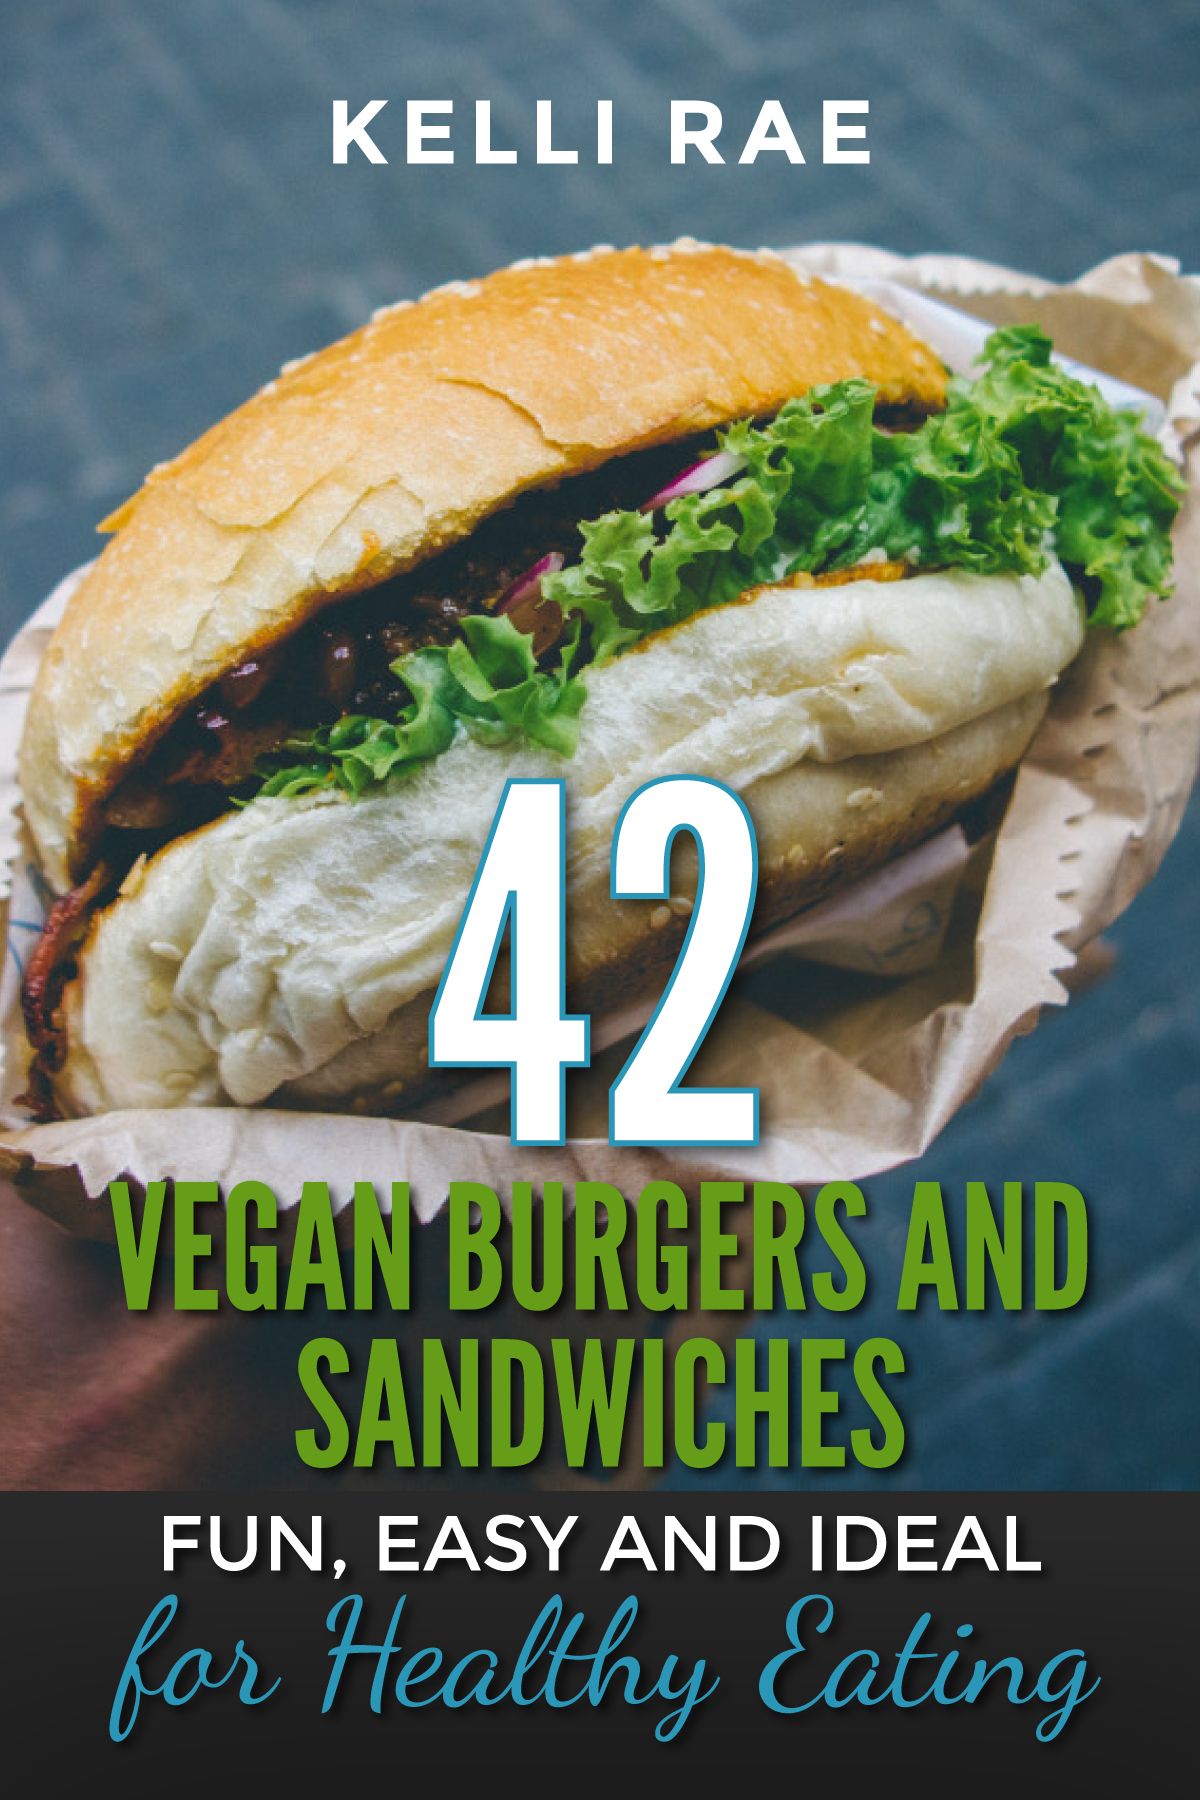 Babelcube 42 Vegan Burgers And Sandwiches Fun Easy And Ideal For Healthy Eating